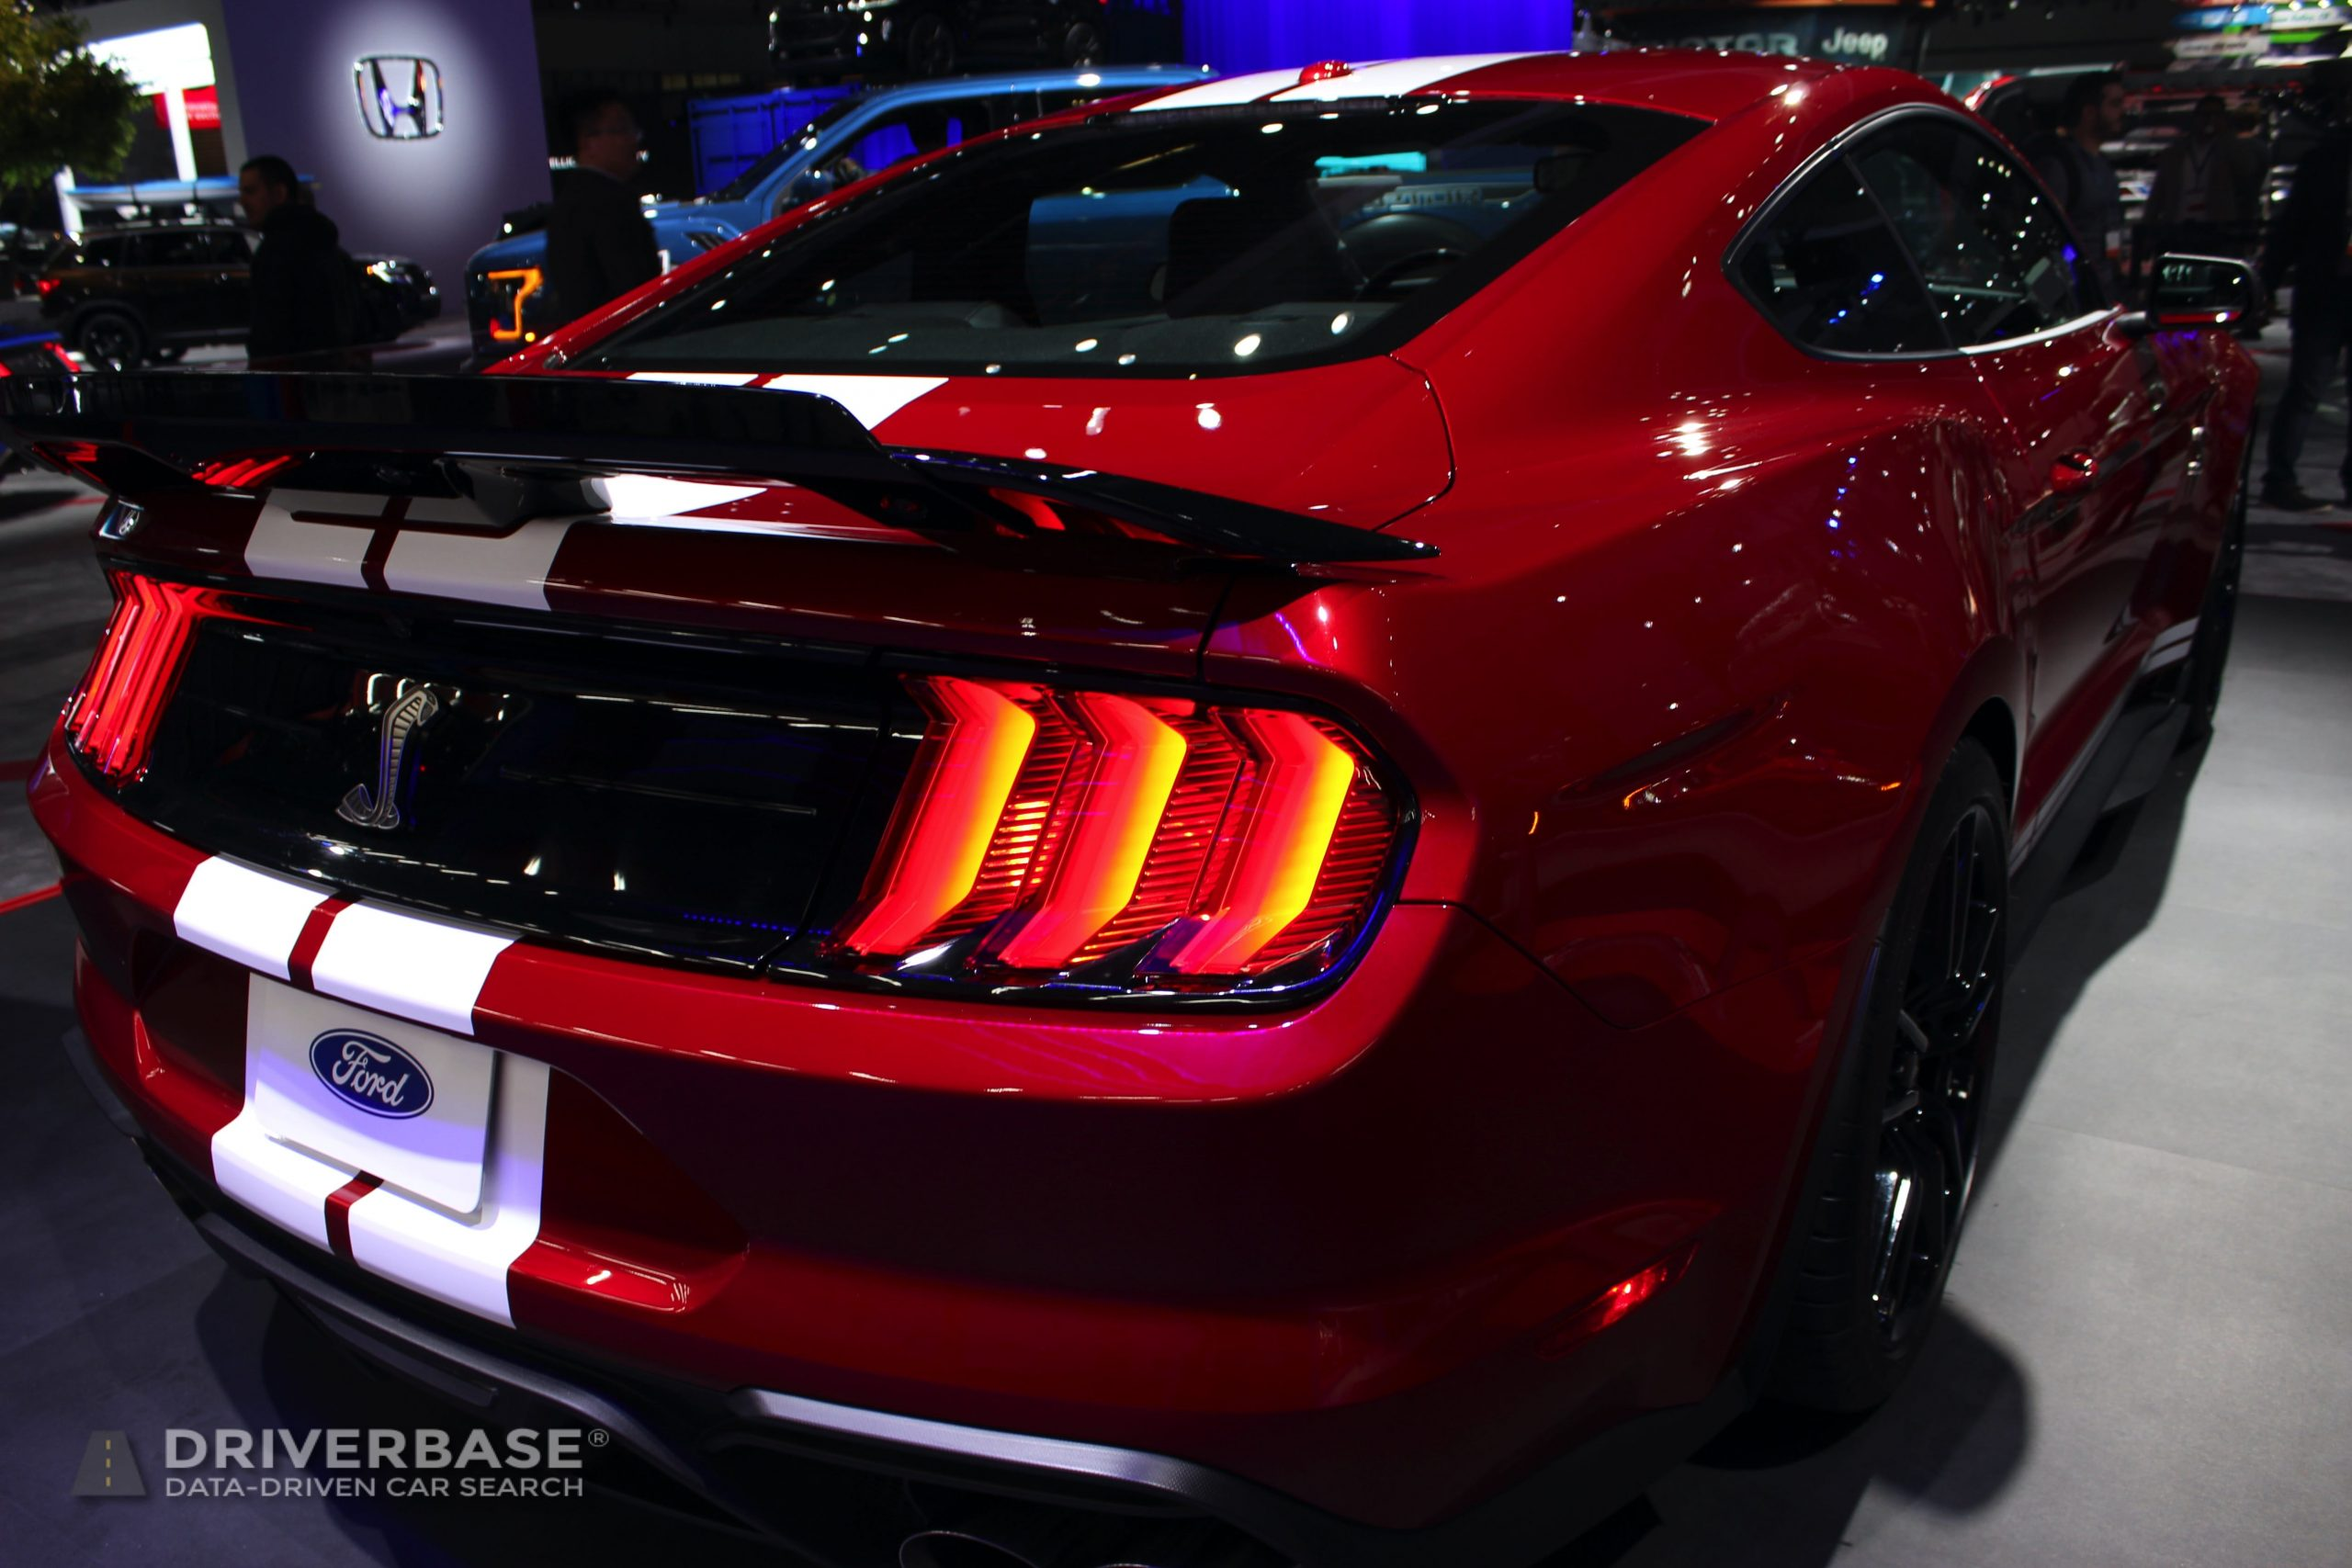 2020 Ford Mustang Shelby GT500 at the 2019 Los Angeles Auto Show